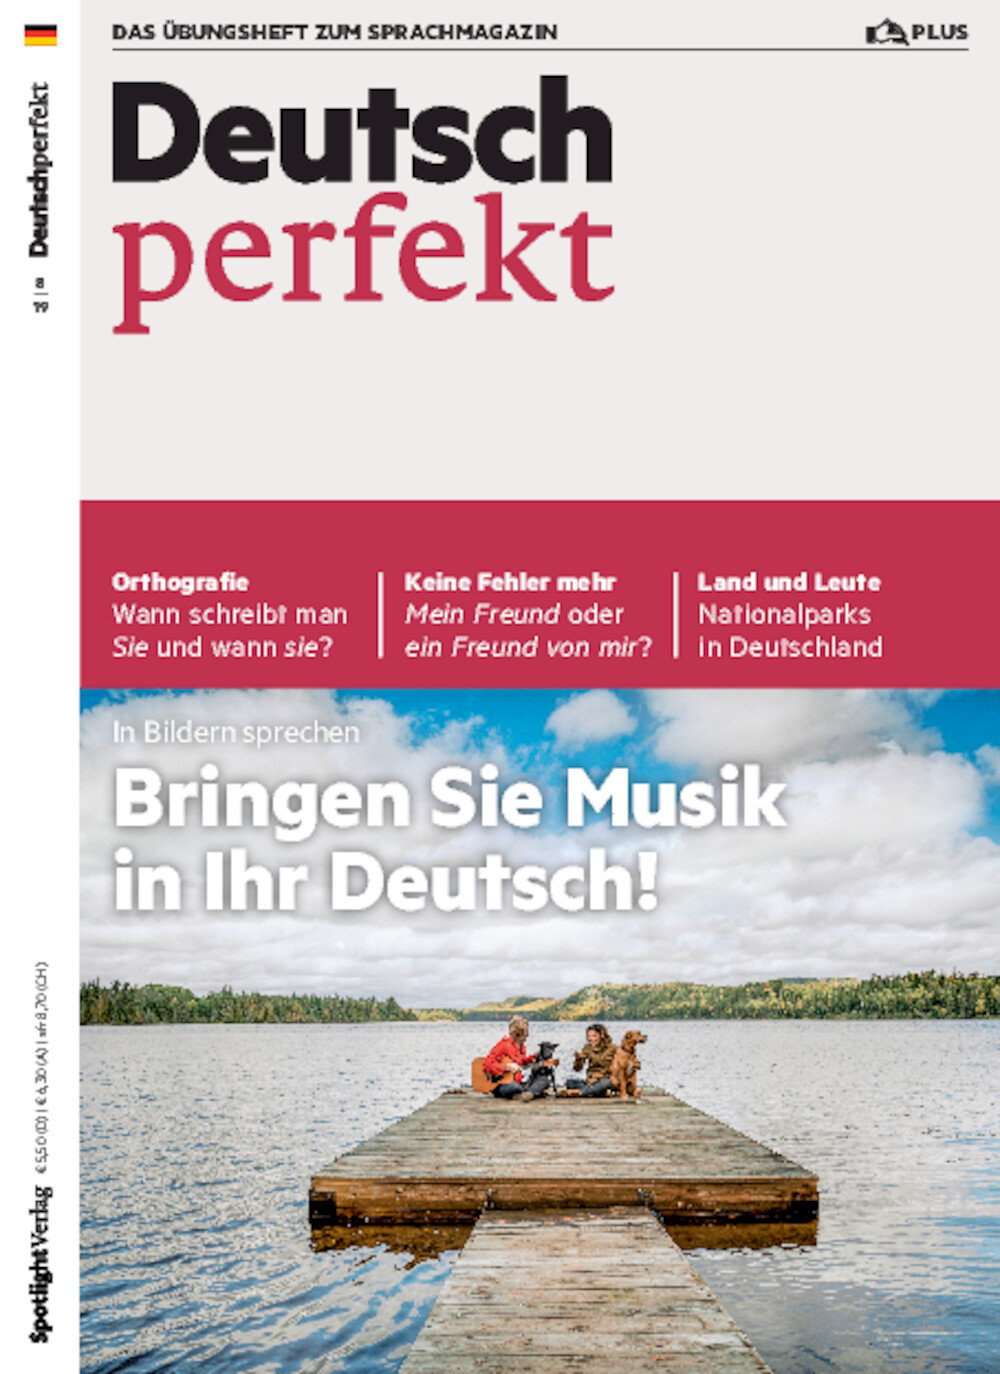 Deutsch perfekt PLUS 08/2019